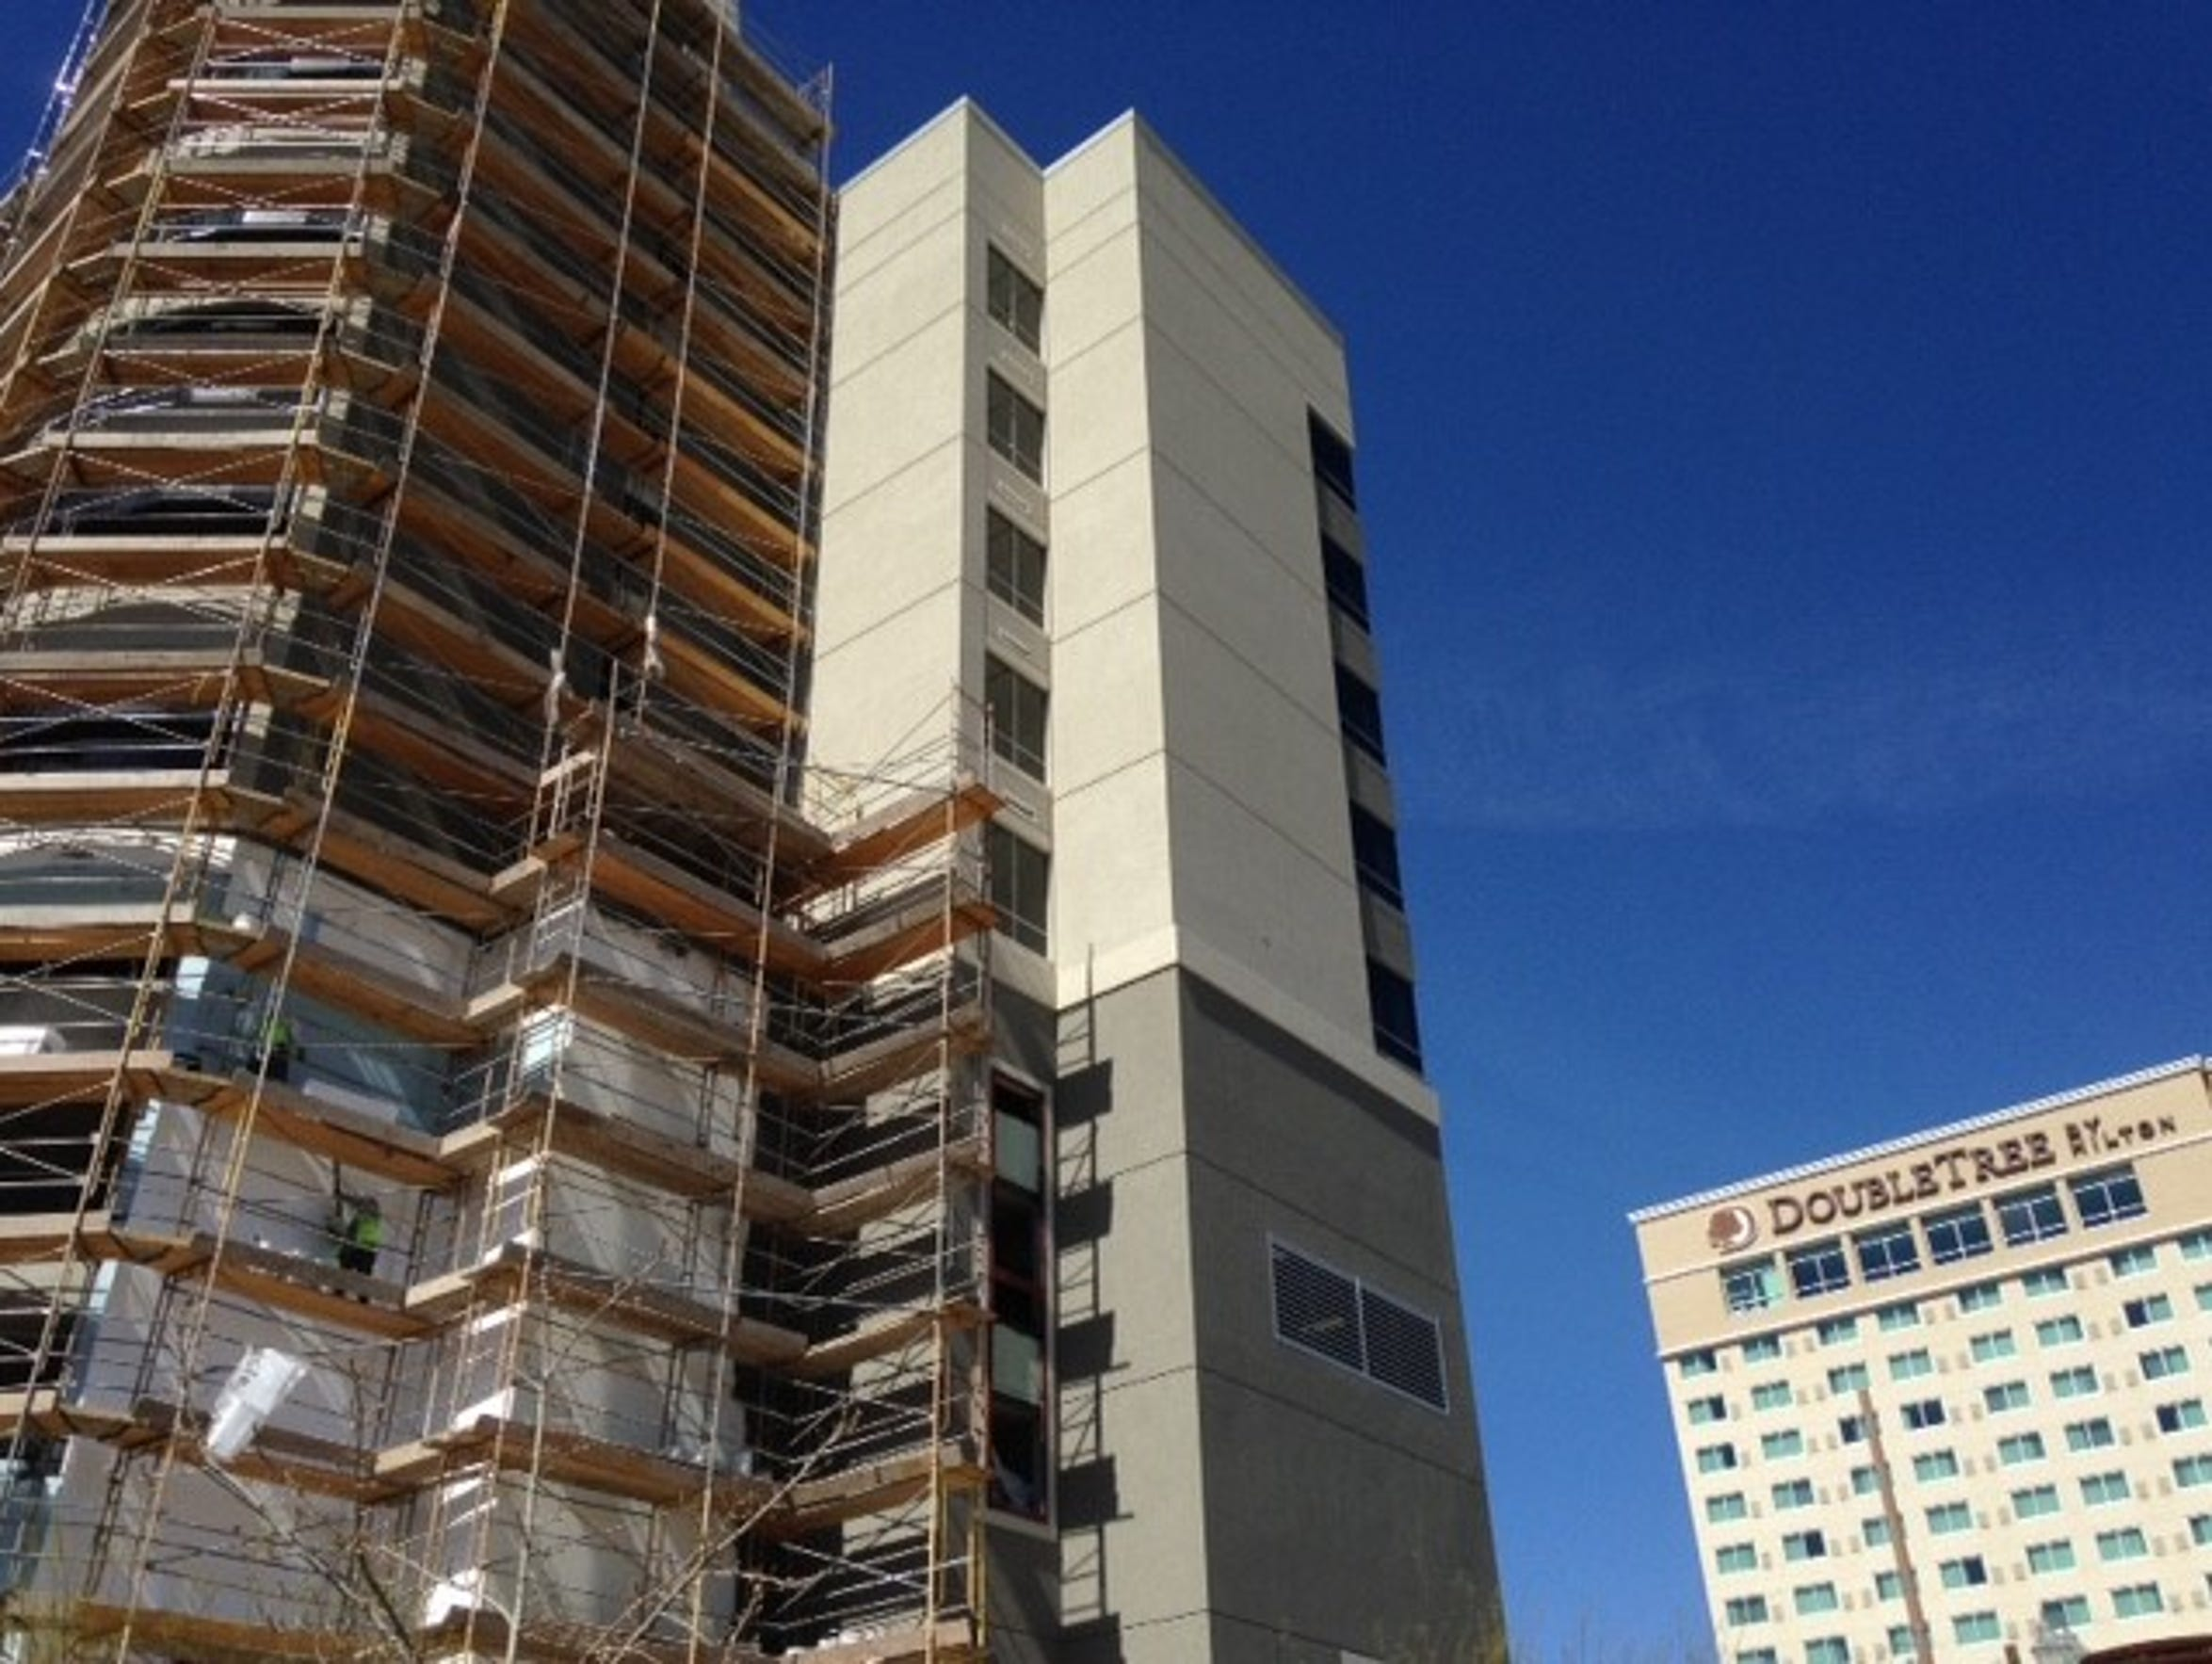 The Courtyard by Marriott hotel is under construction